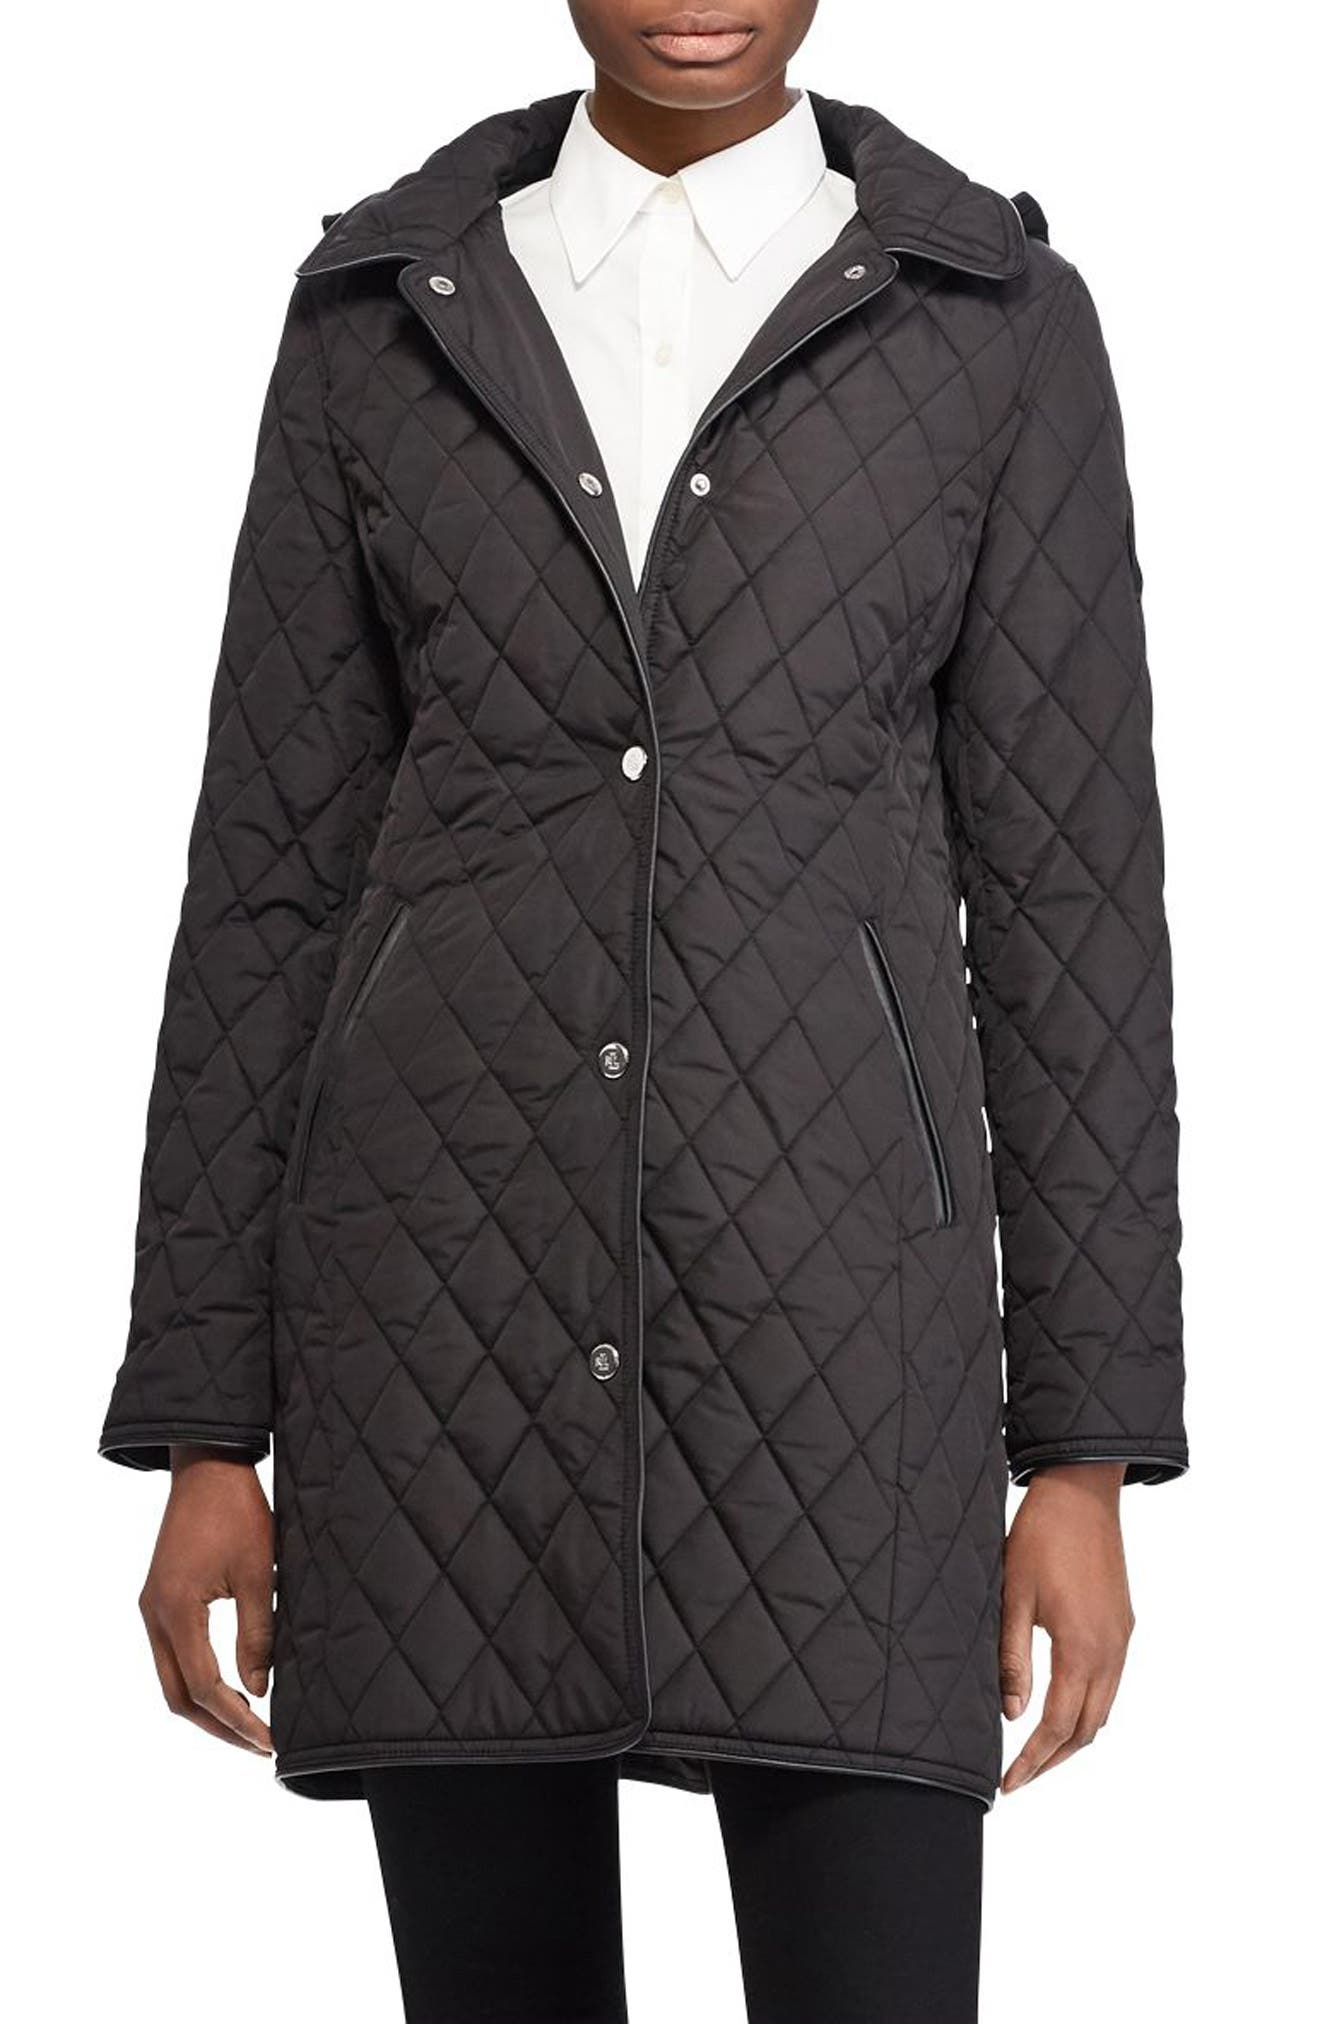 LAUREN RALPH LAUREN Quilted Hooded Jacket, Main, color, 001